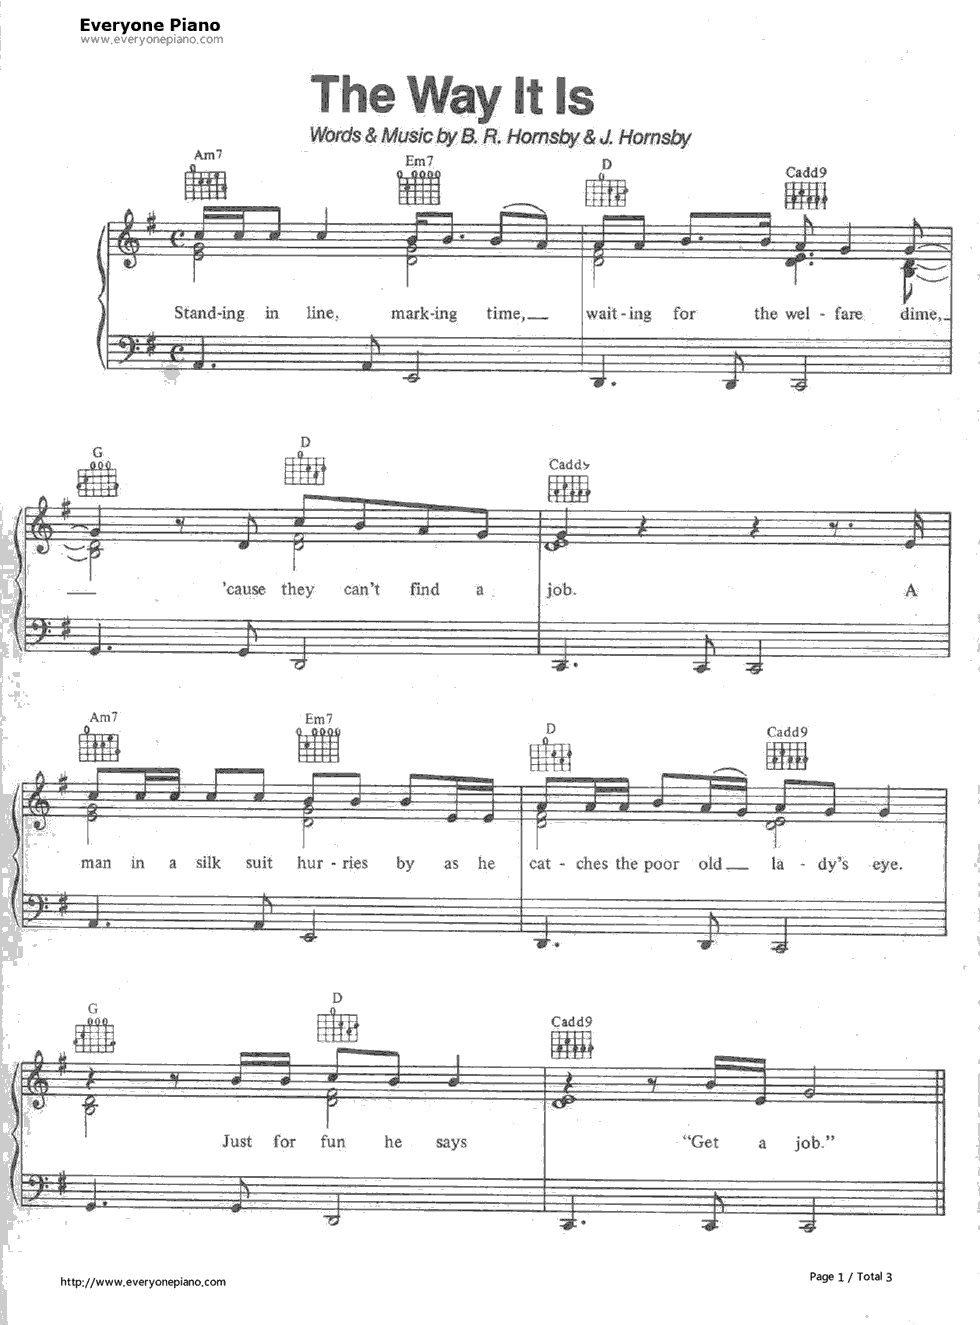 The way it is bruce hornsby stave preview 1 free piano sheet listen now print sheet the way it is bruce hornsby stave preview 1 hexwebz Images